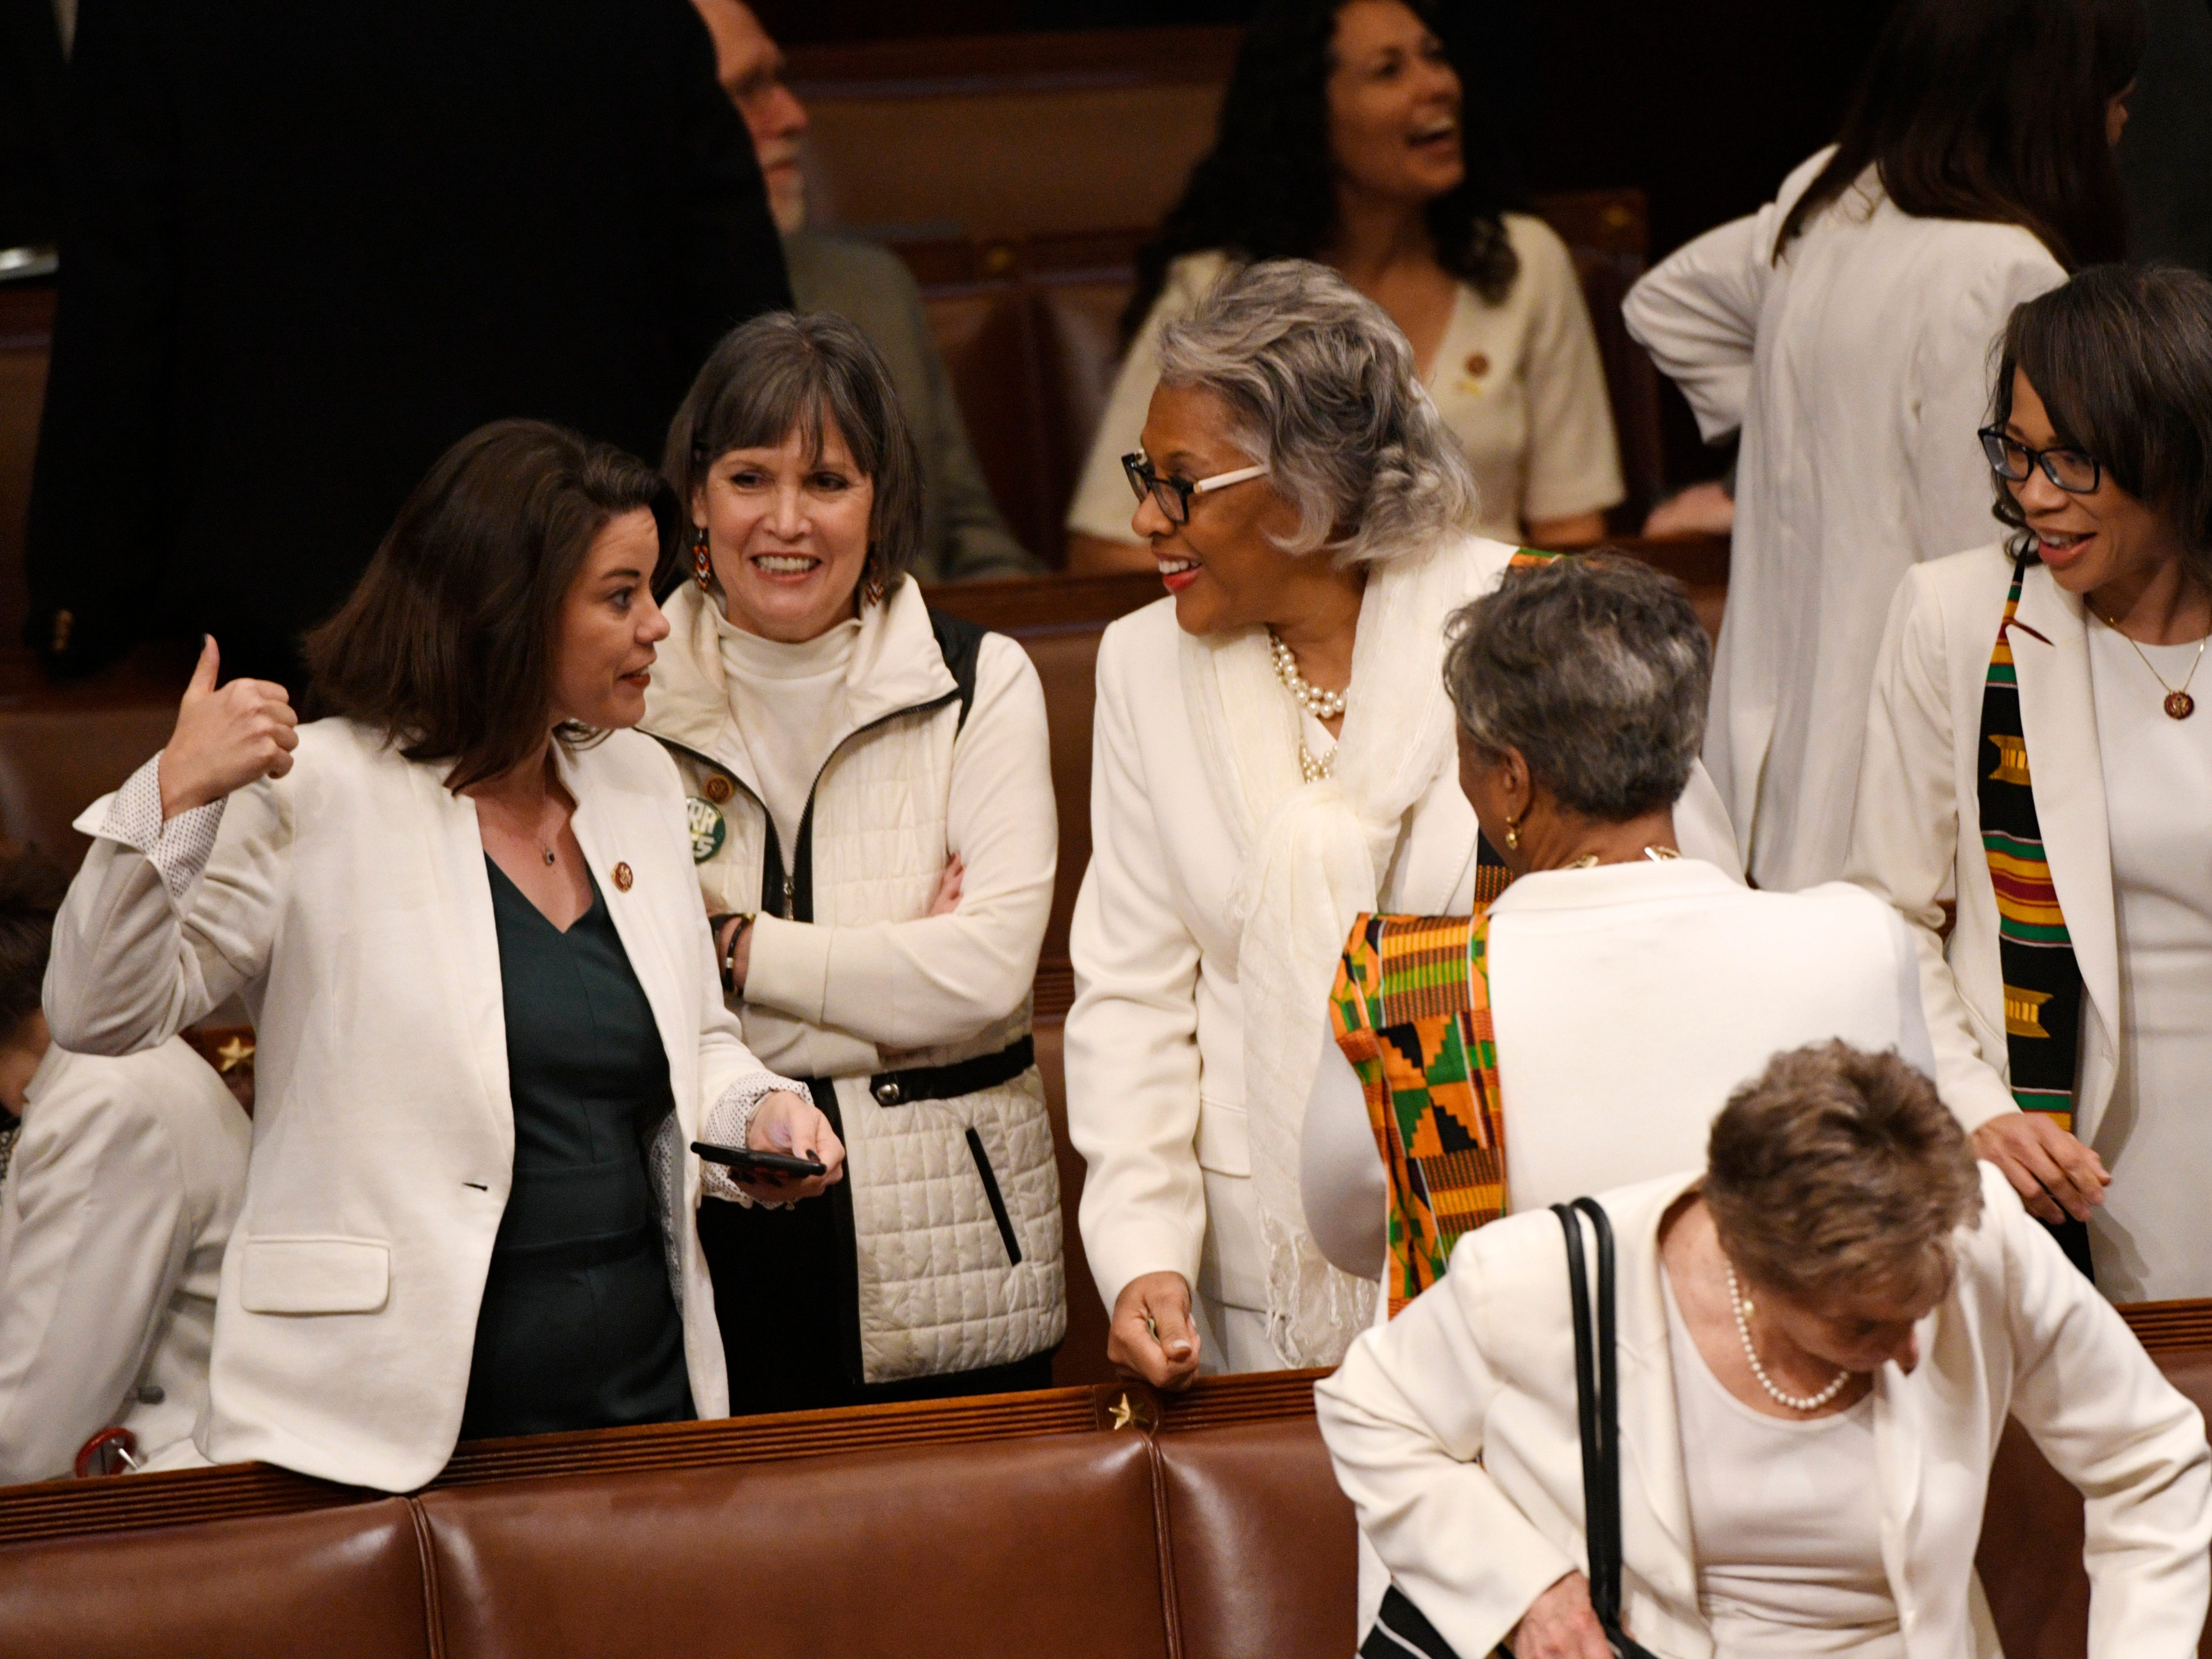 Women members of Congress dressed in white gather prior to President Donald Trump delivering the State of the Union address, Feb. 5, 2019.